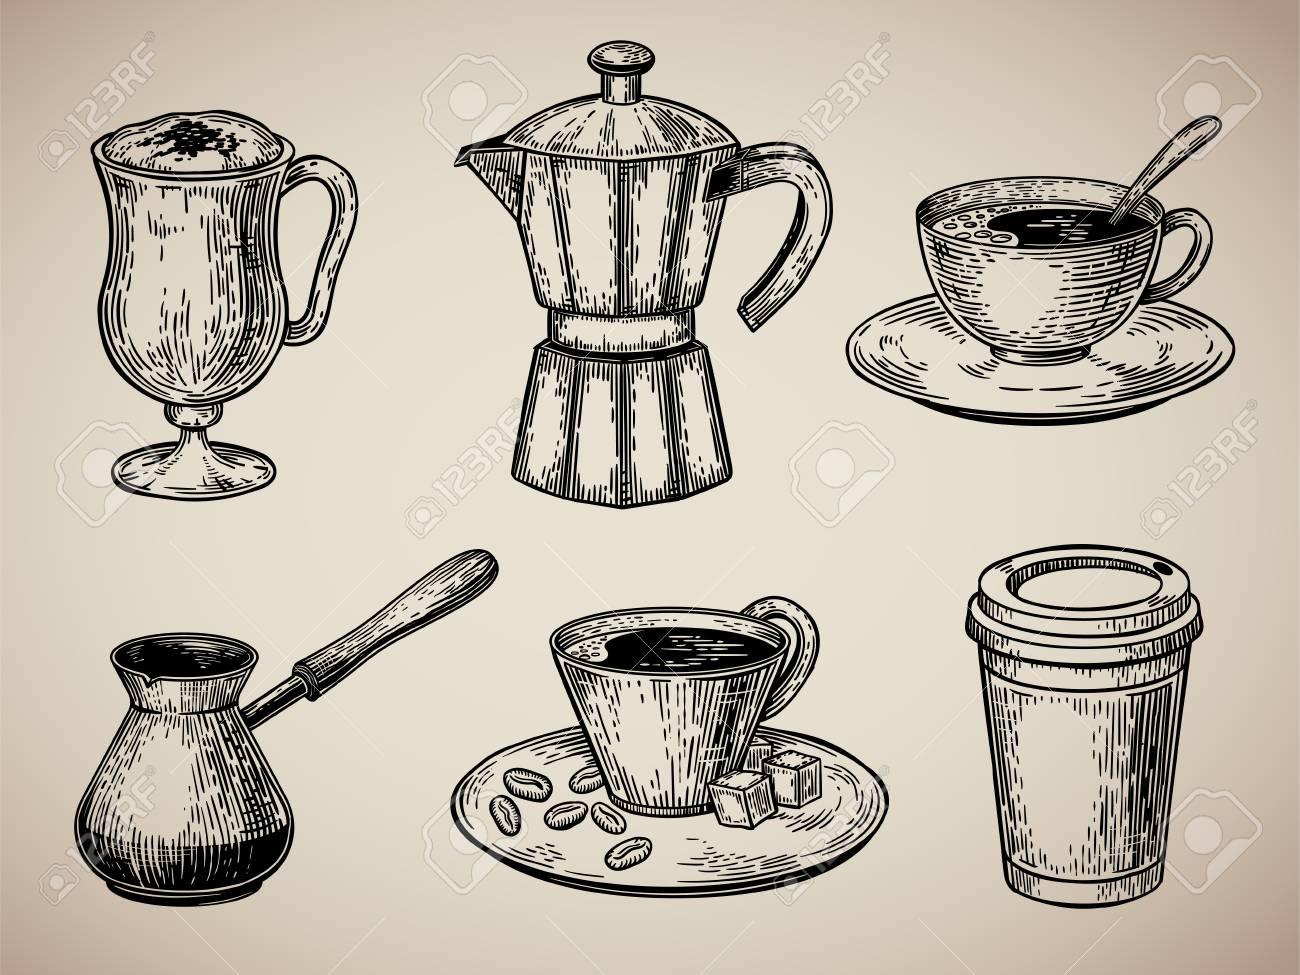 Coffee Set Engraving Latte Turk Pot Cup With